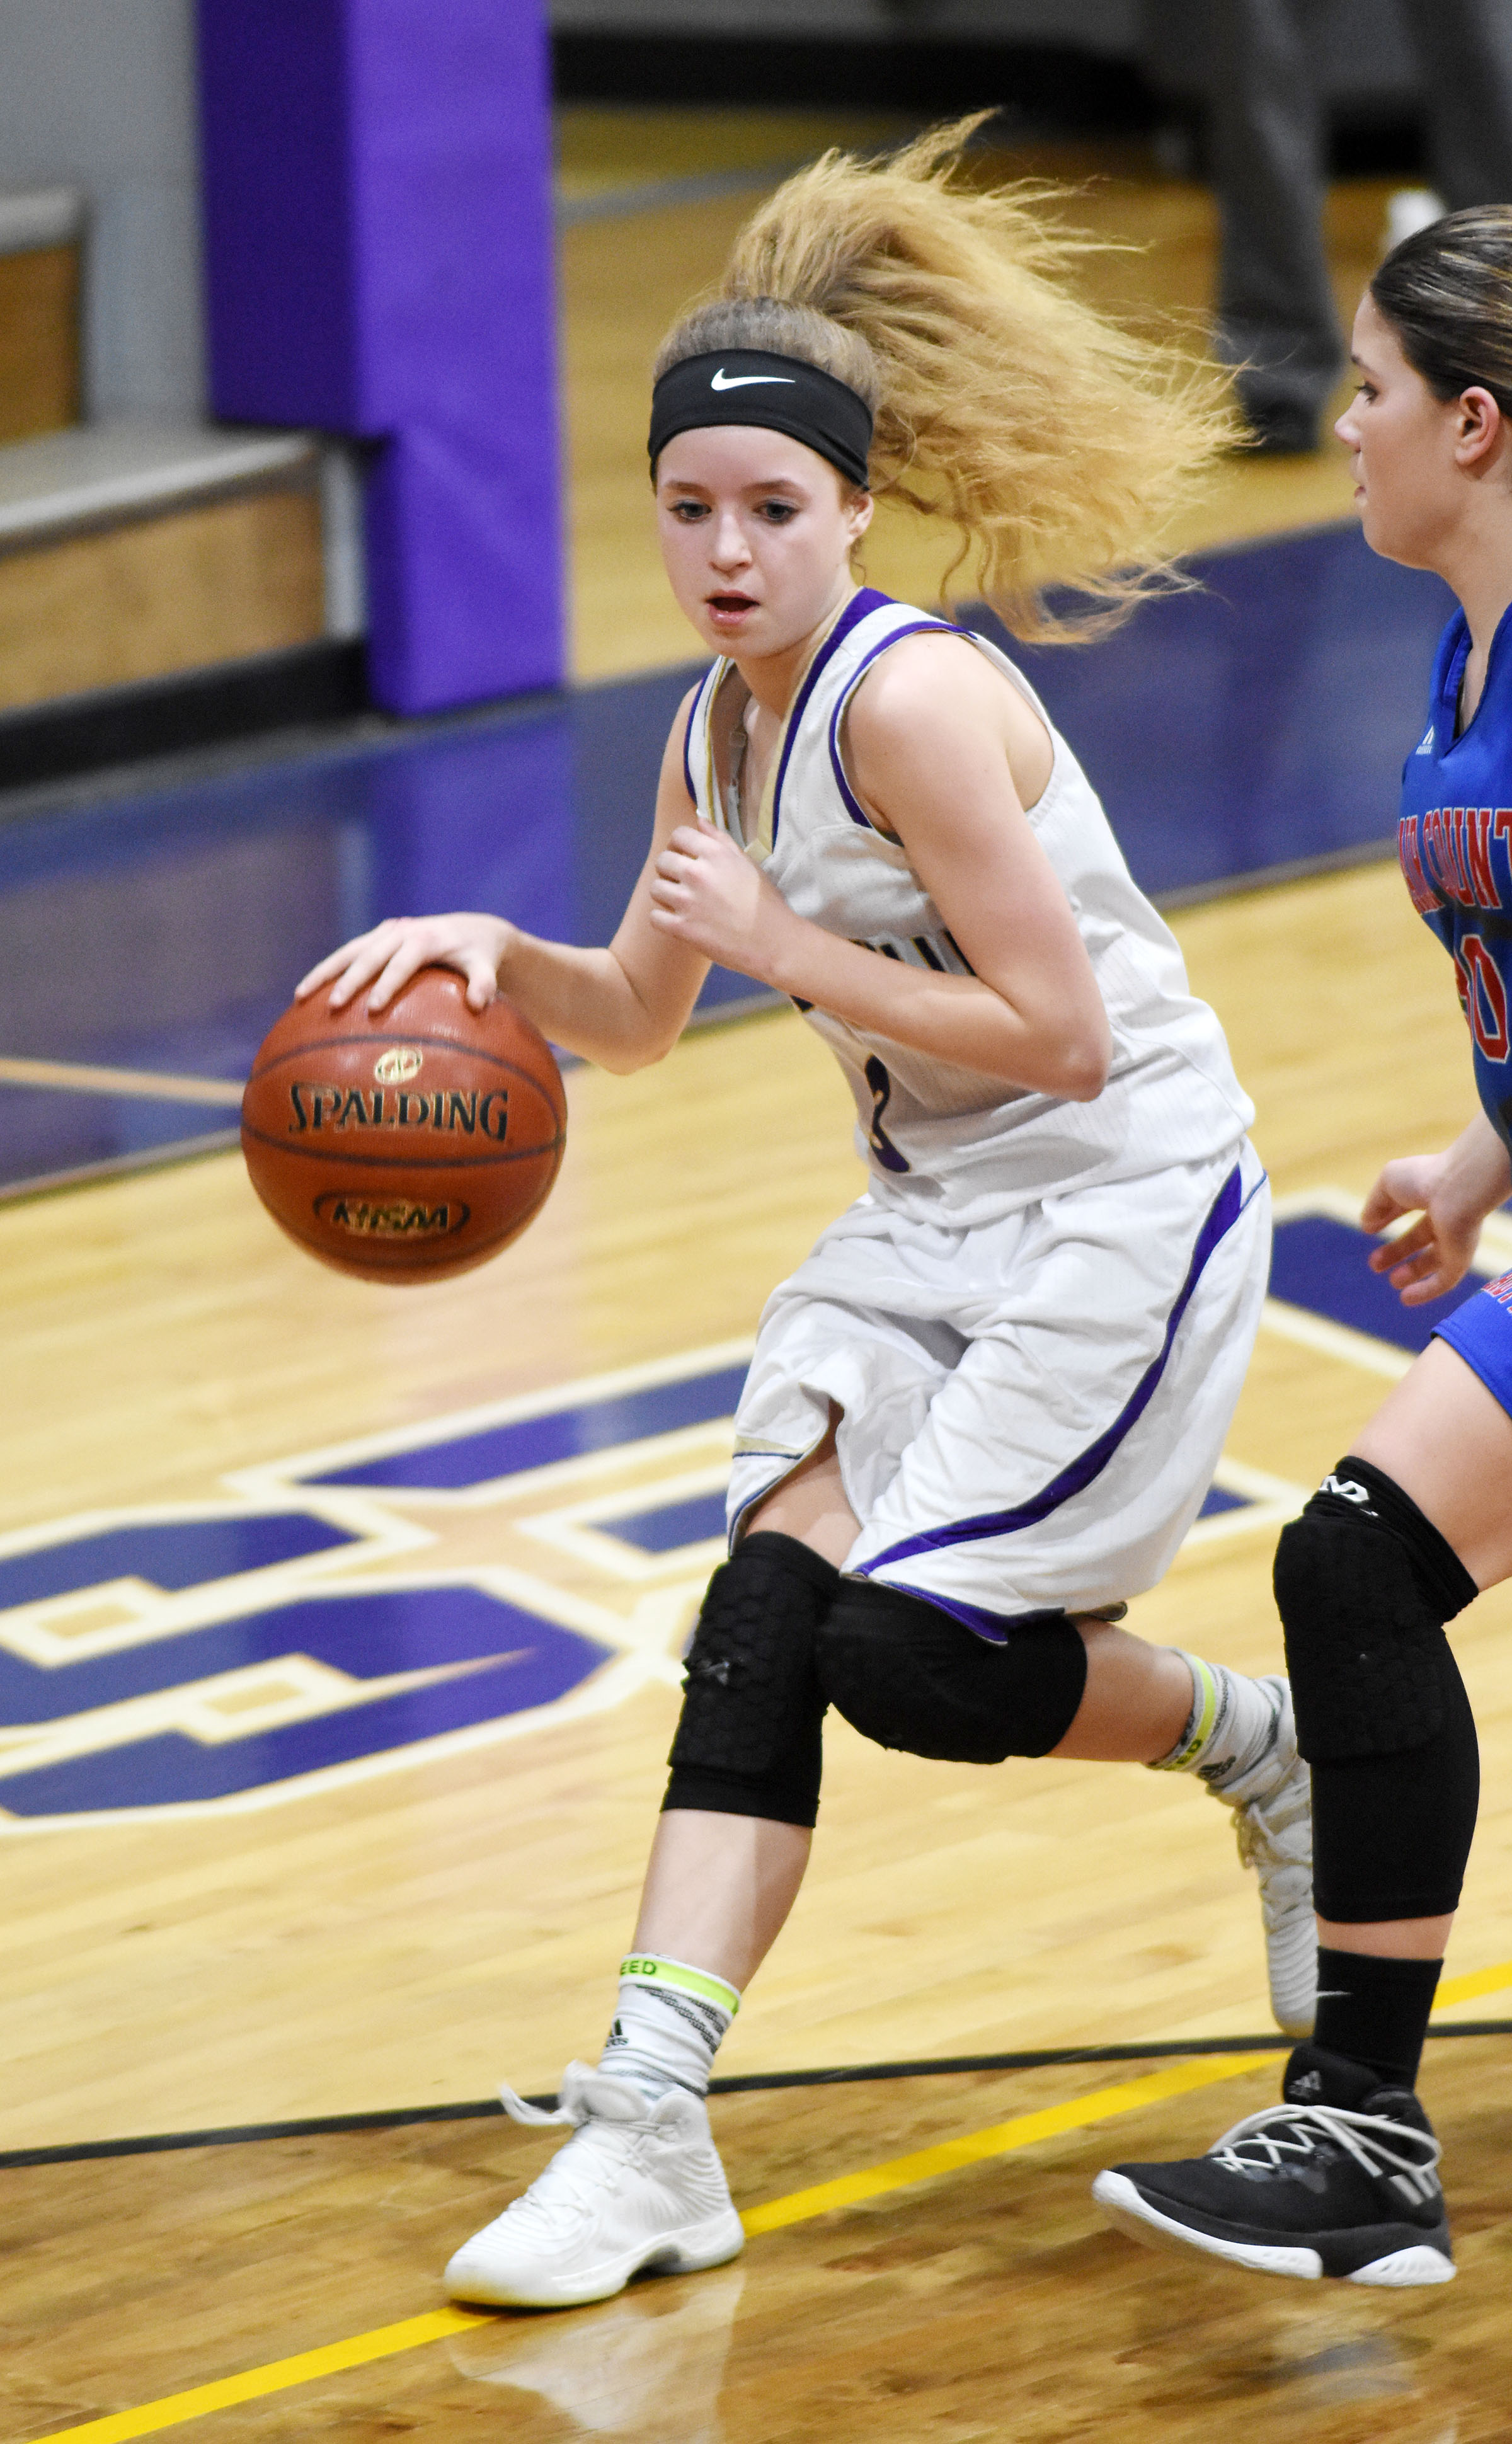 Campbellsville Middle School eighth-grader Rylee Petett dribbles.